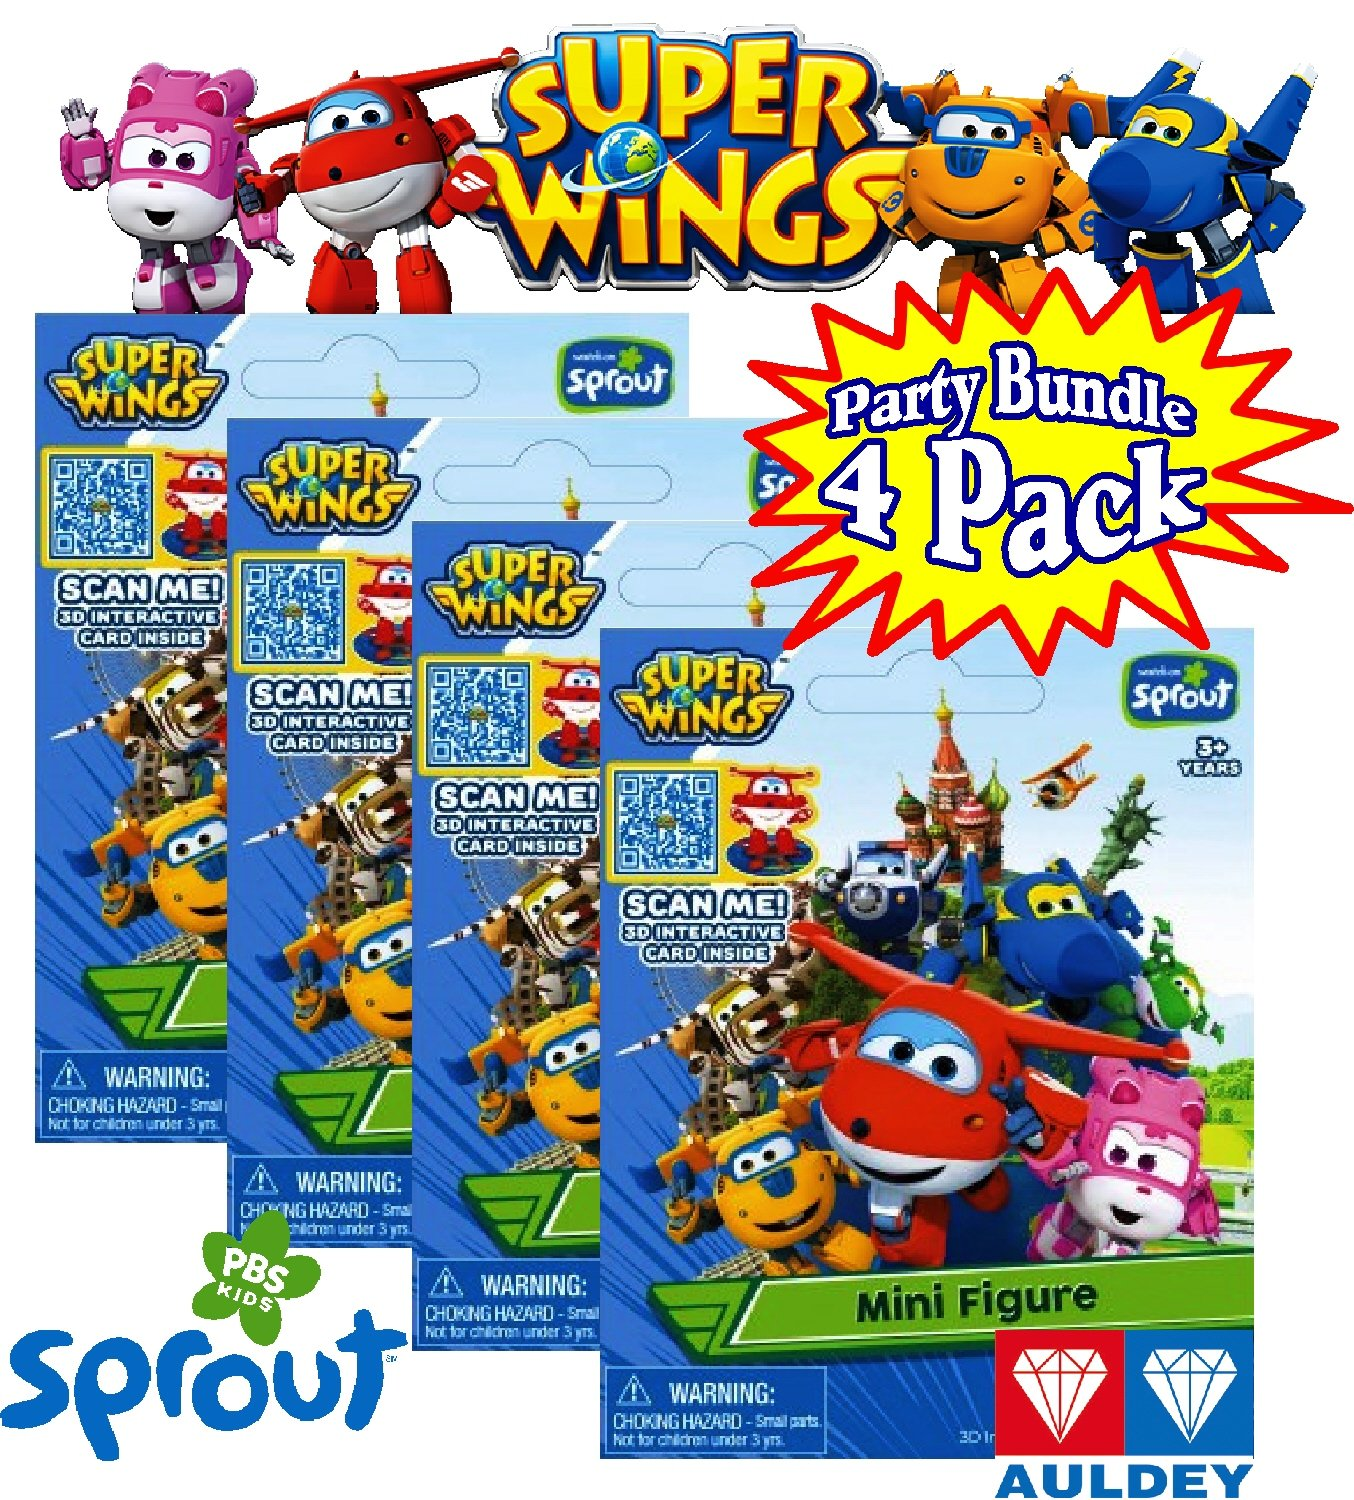 super wings mini figure blind packs with 3d interactive card party set bundle 4 pack - Sprout Super Wings Coloring Pages